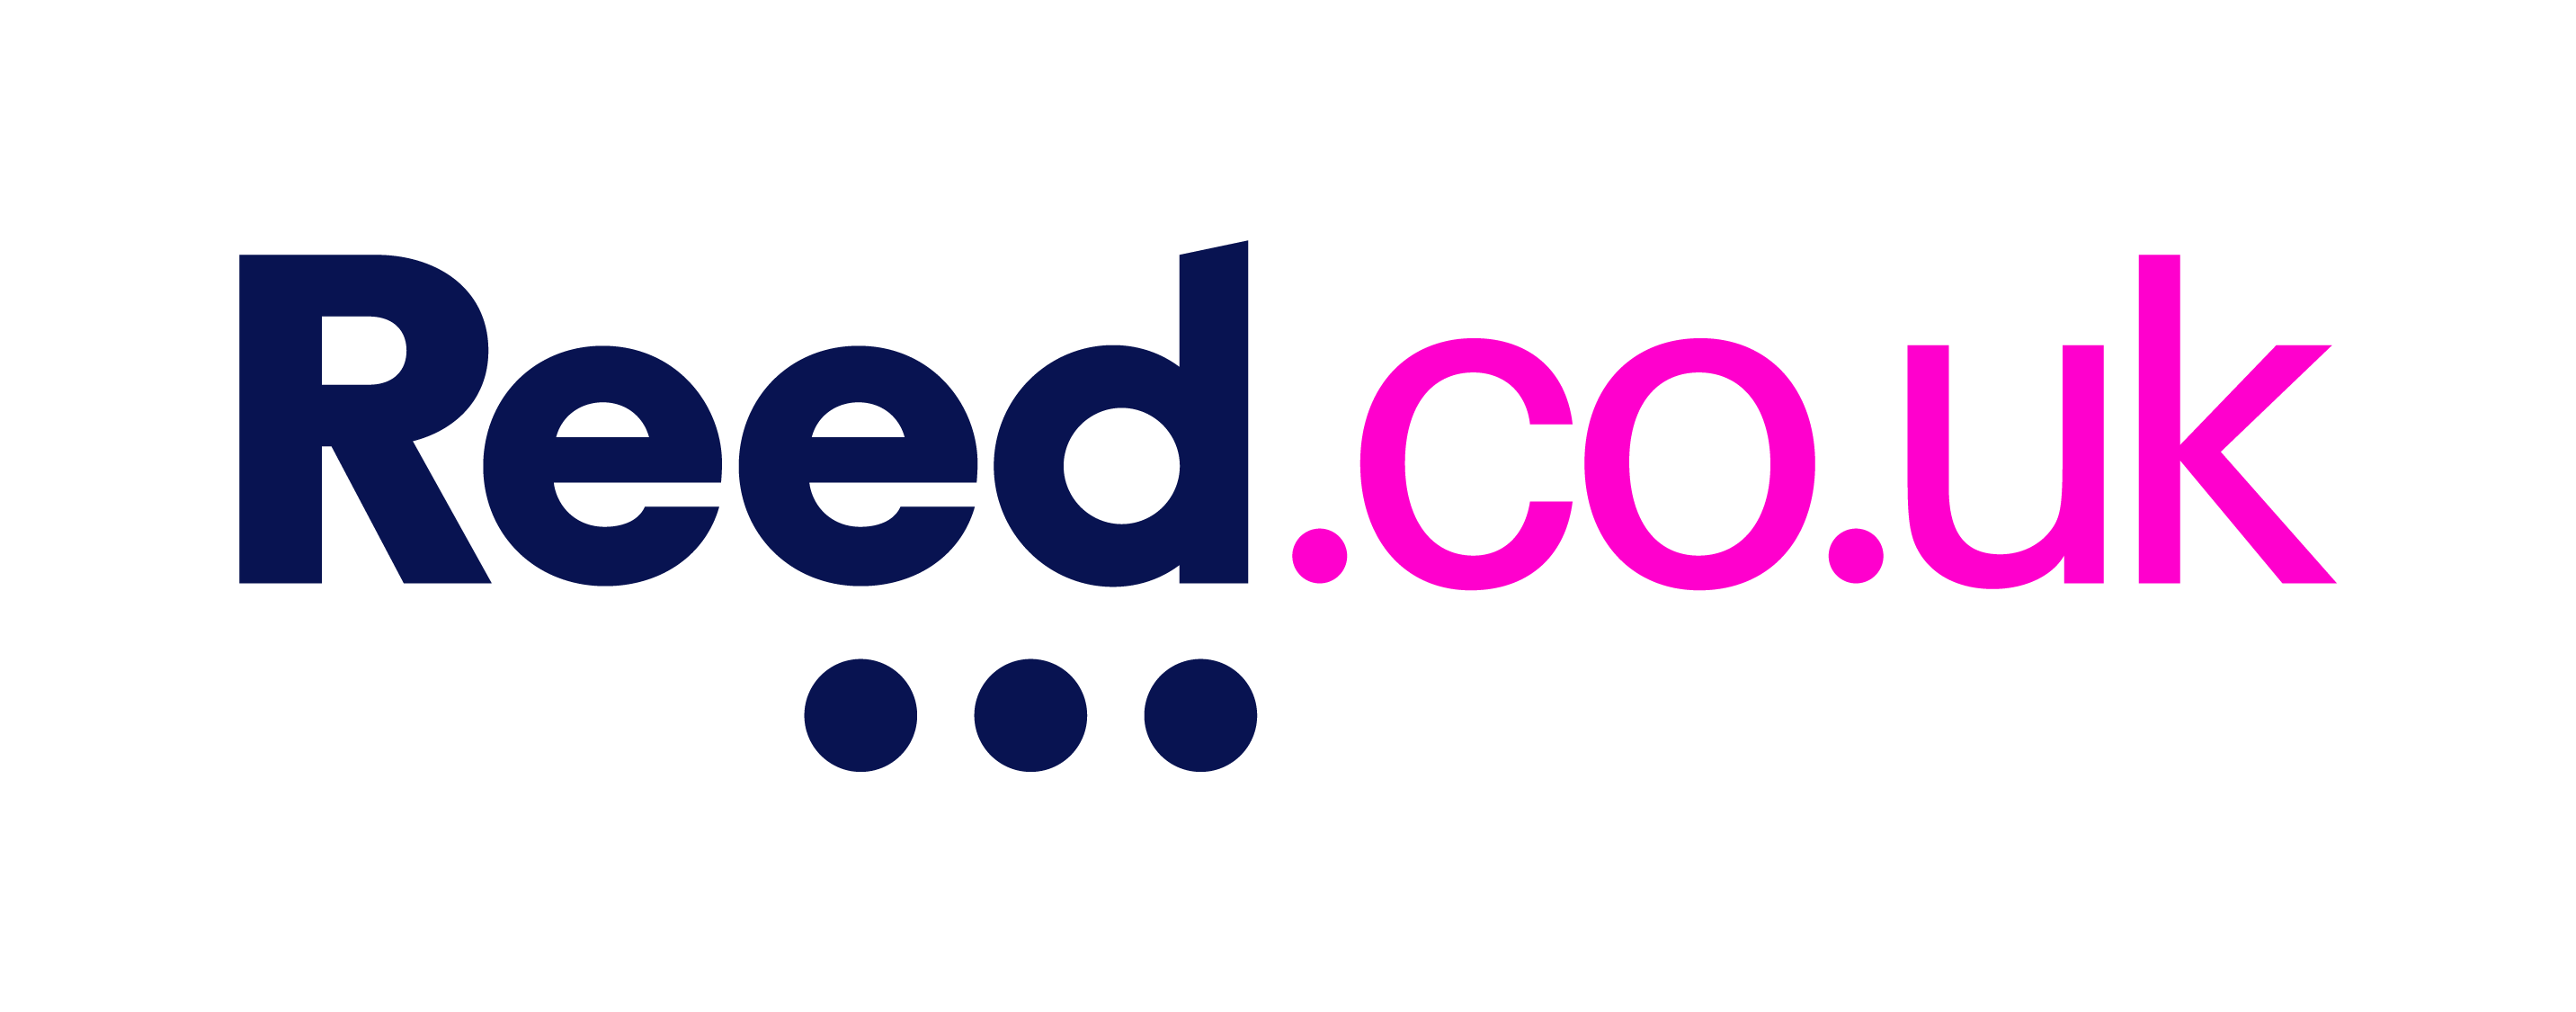 reed.co.uk logo blue and pink transparent